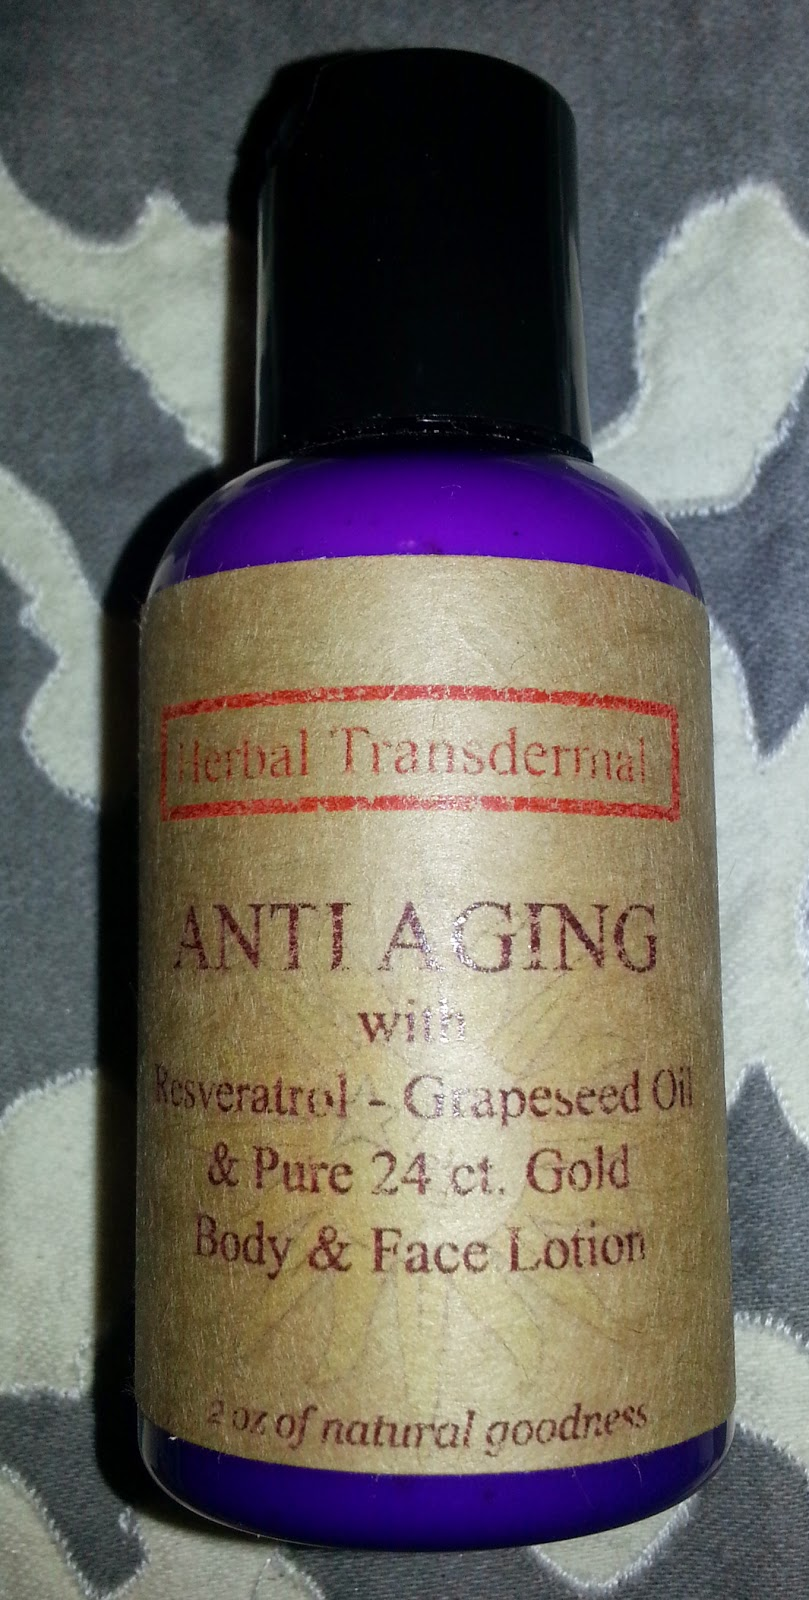 Anti Aging Body and Face Lotion with Resveratol, Grapeseed Oil, and Pure 24 Ct Gold